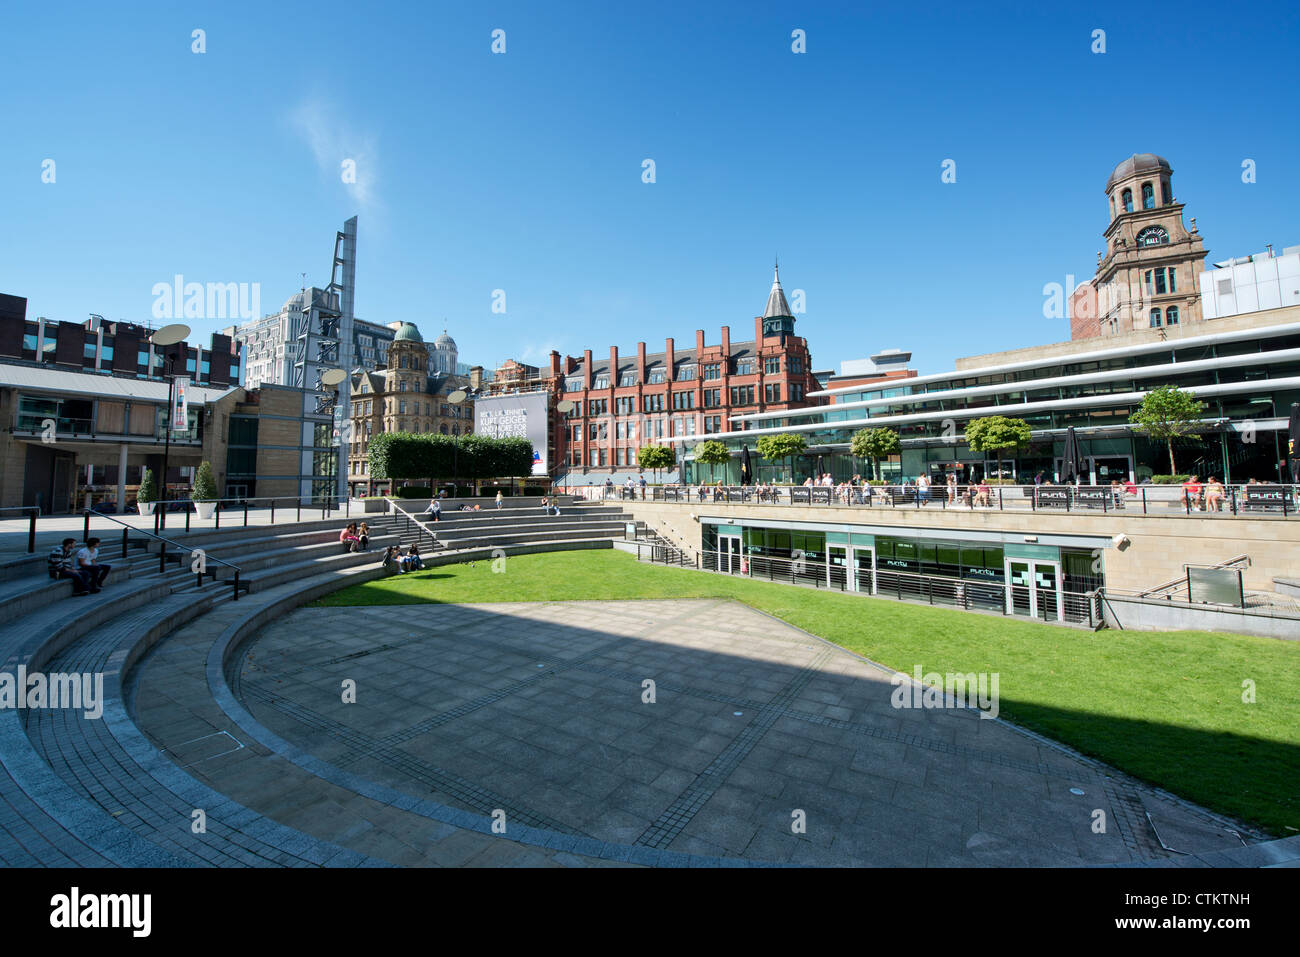 People enjoy themselves in a small amphitheatre behind Peter Street in Manchester on a sunny summer's day. - Stock Image